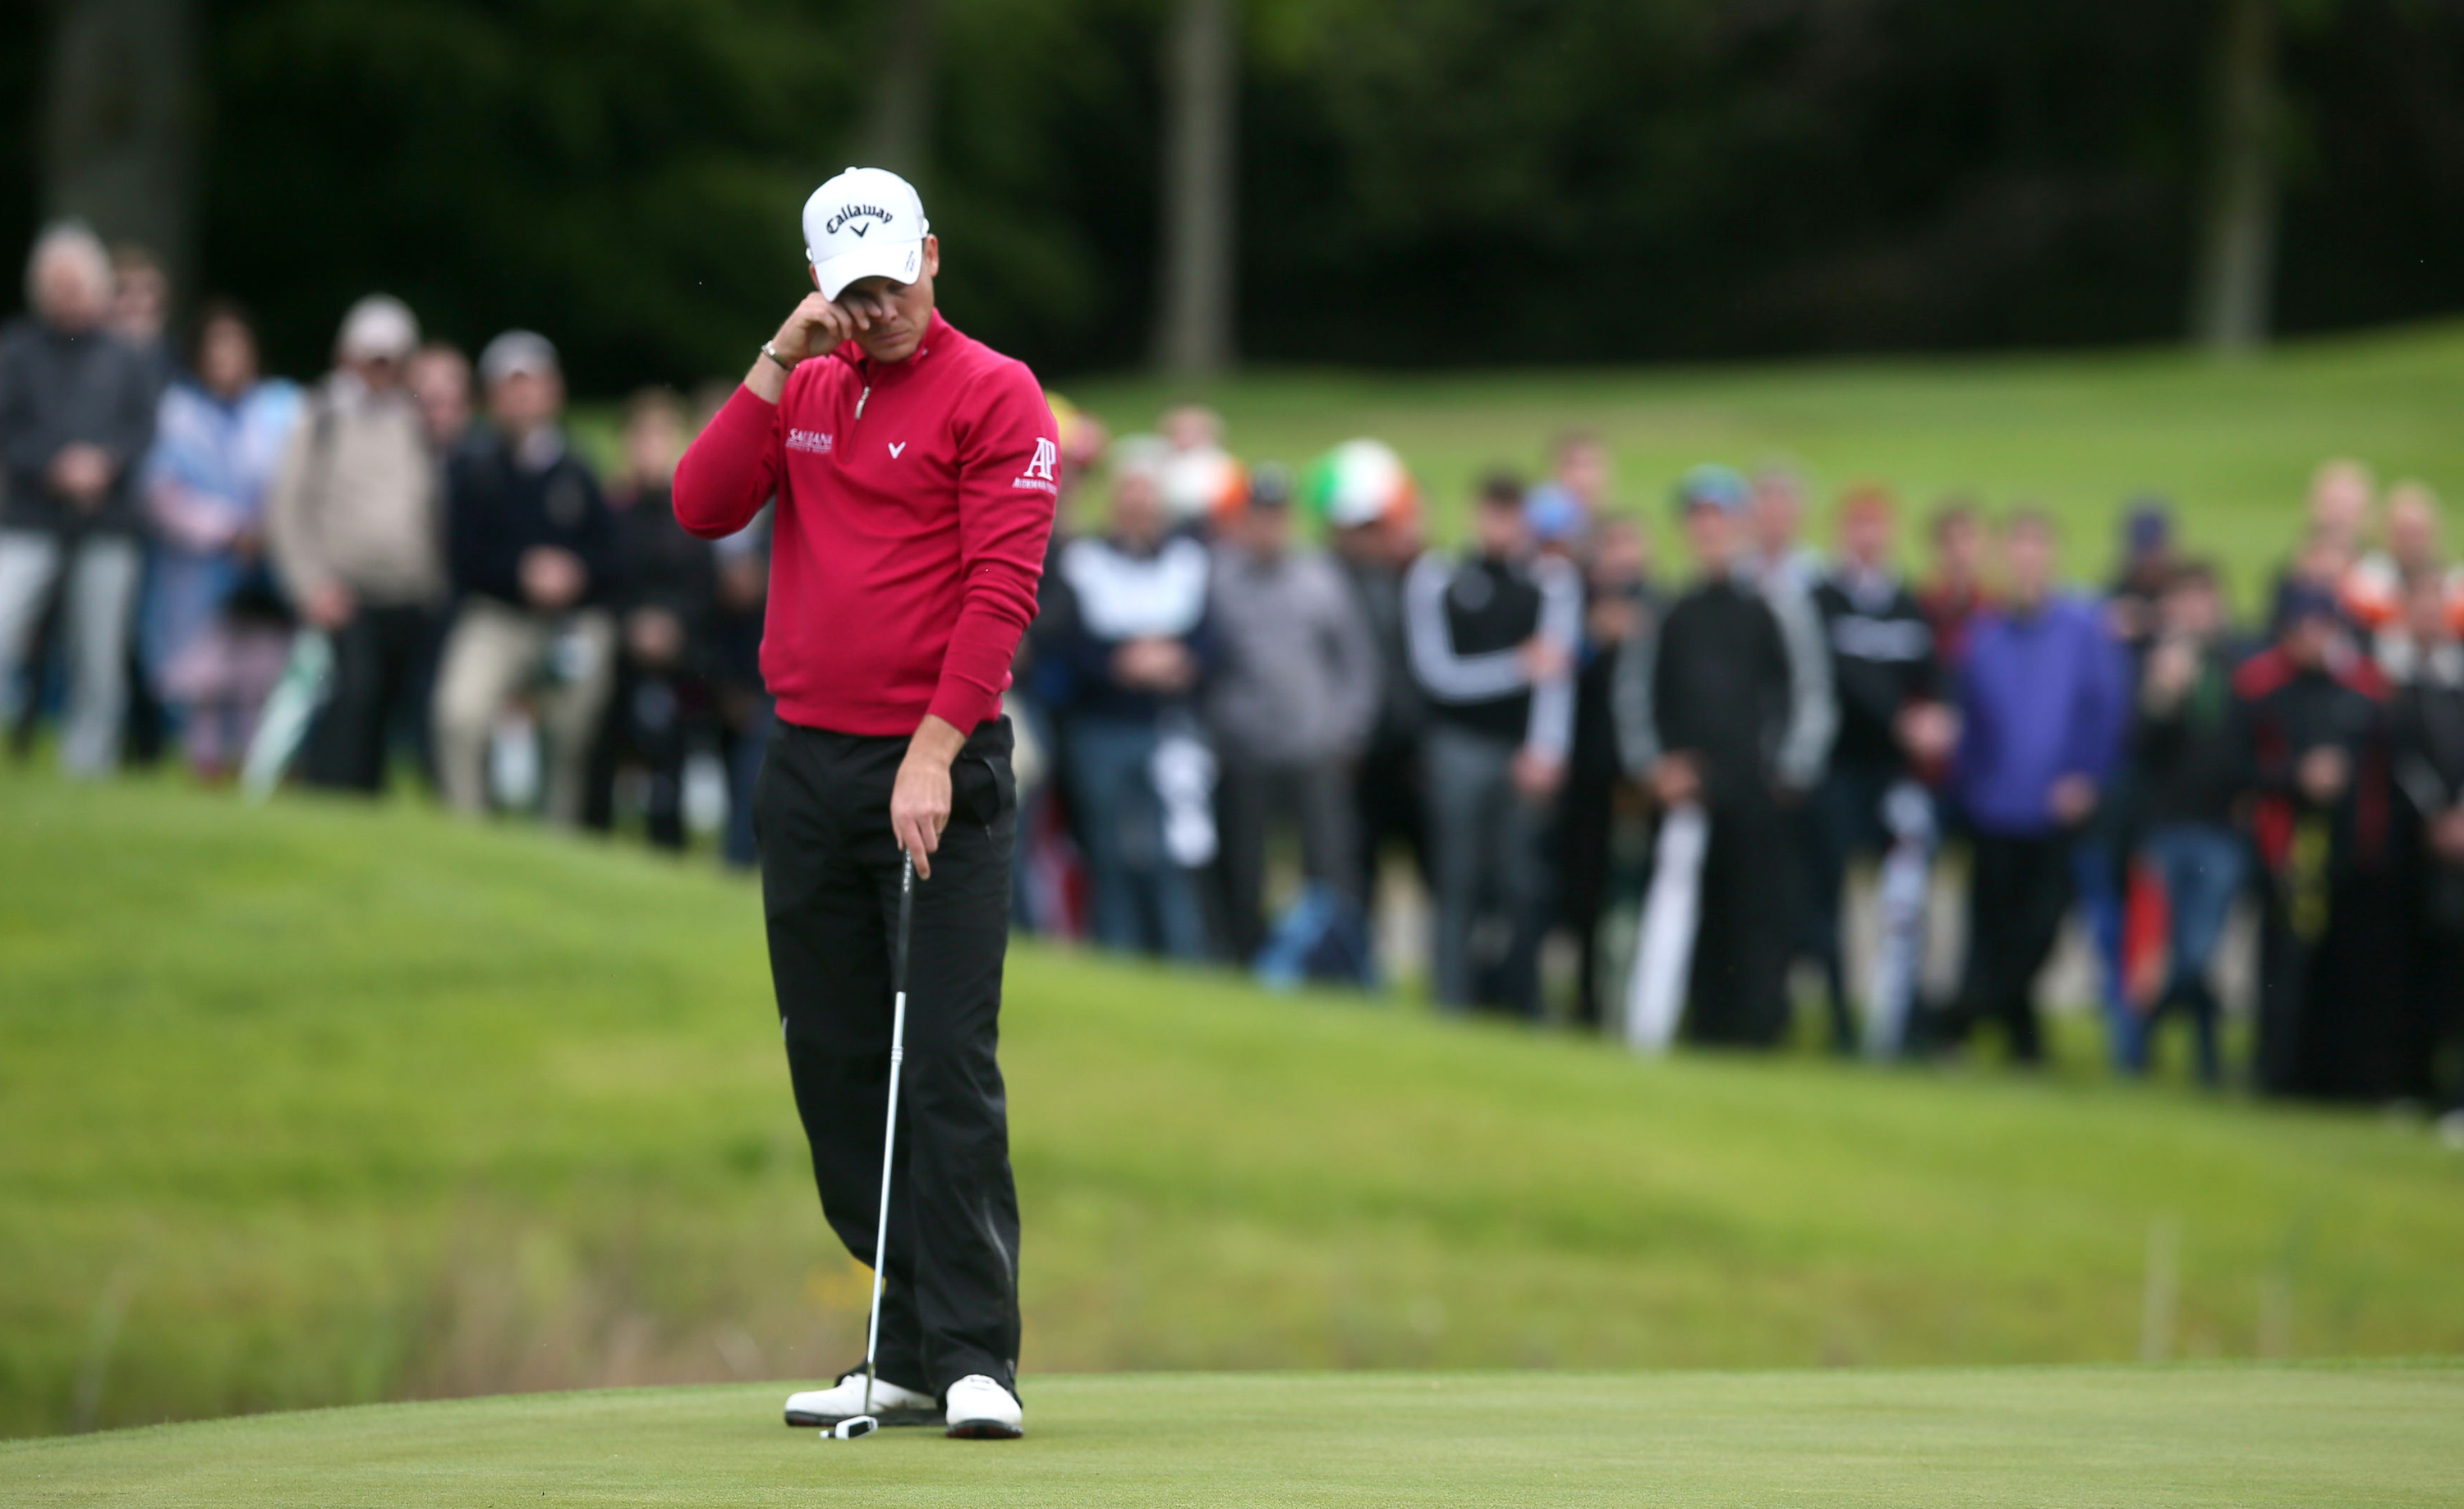 England's Danny Willett reacts after missing a putt on the 12th hole during day four of the Irish Open at The K Club, in Straffan, Ireland, Sunday May 22, 2016. (Brian Lawless / PA via AP) UNITED KINGDOM OUT - NO SALES - NO ARCHIVES